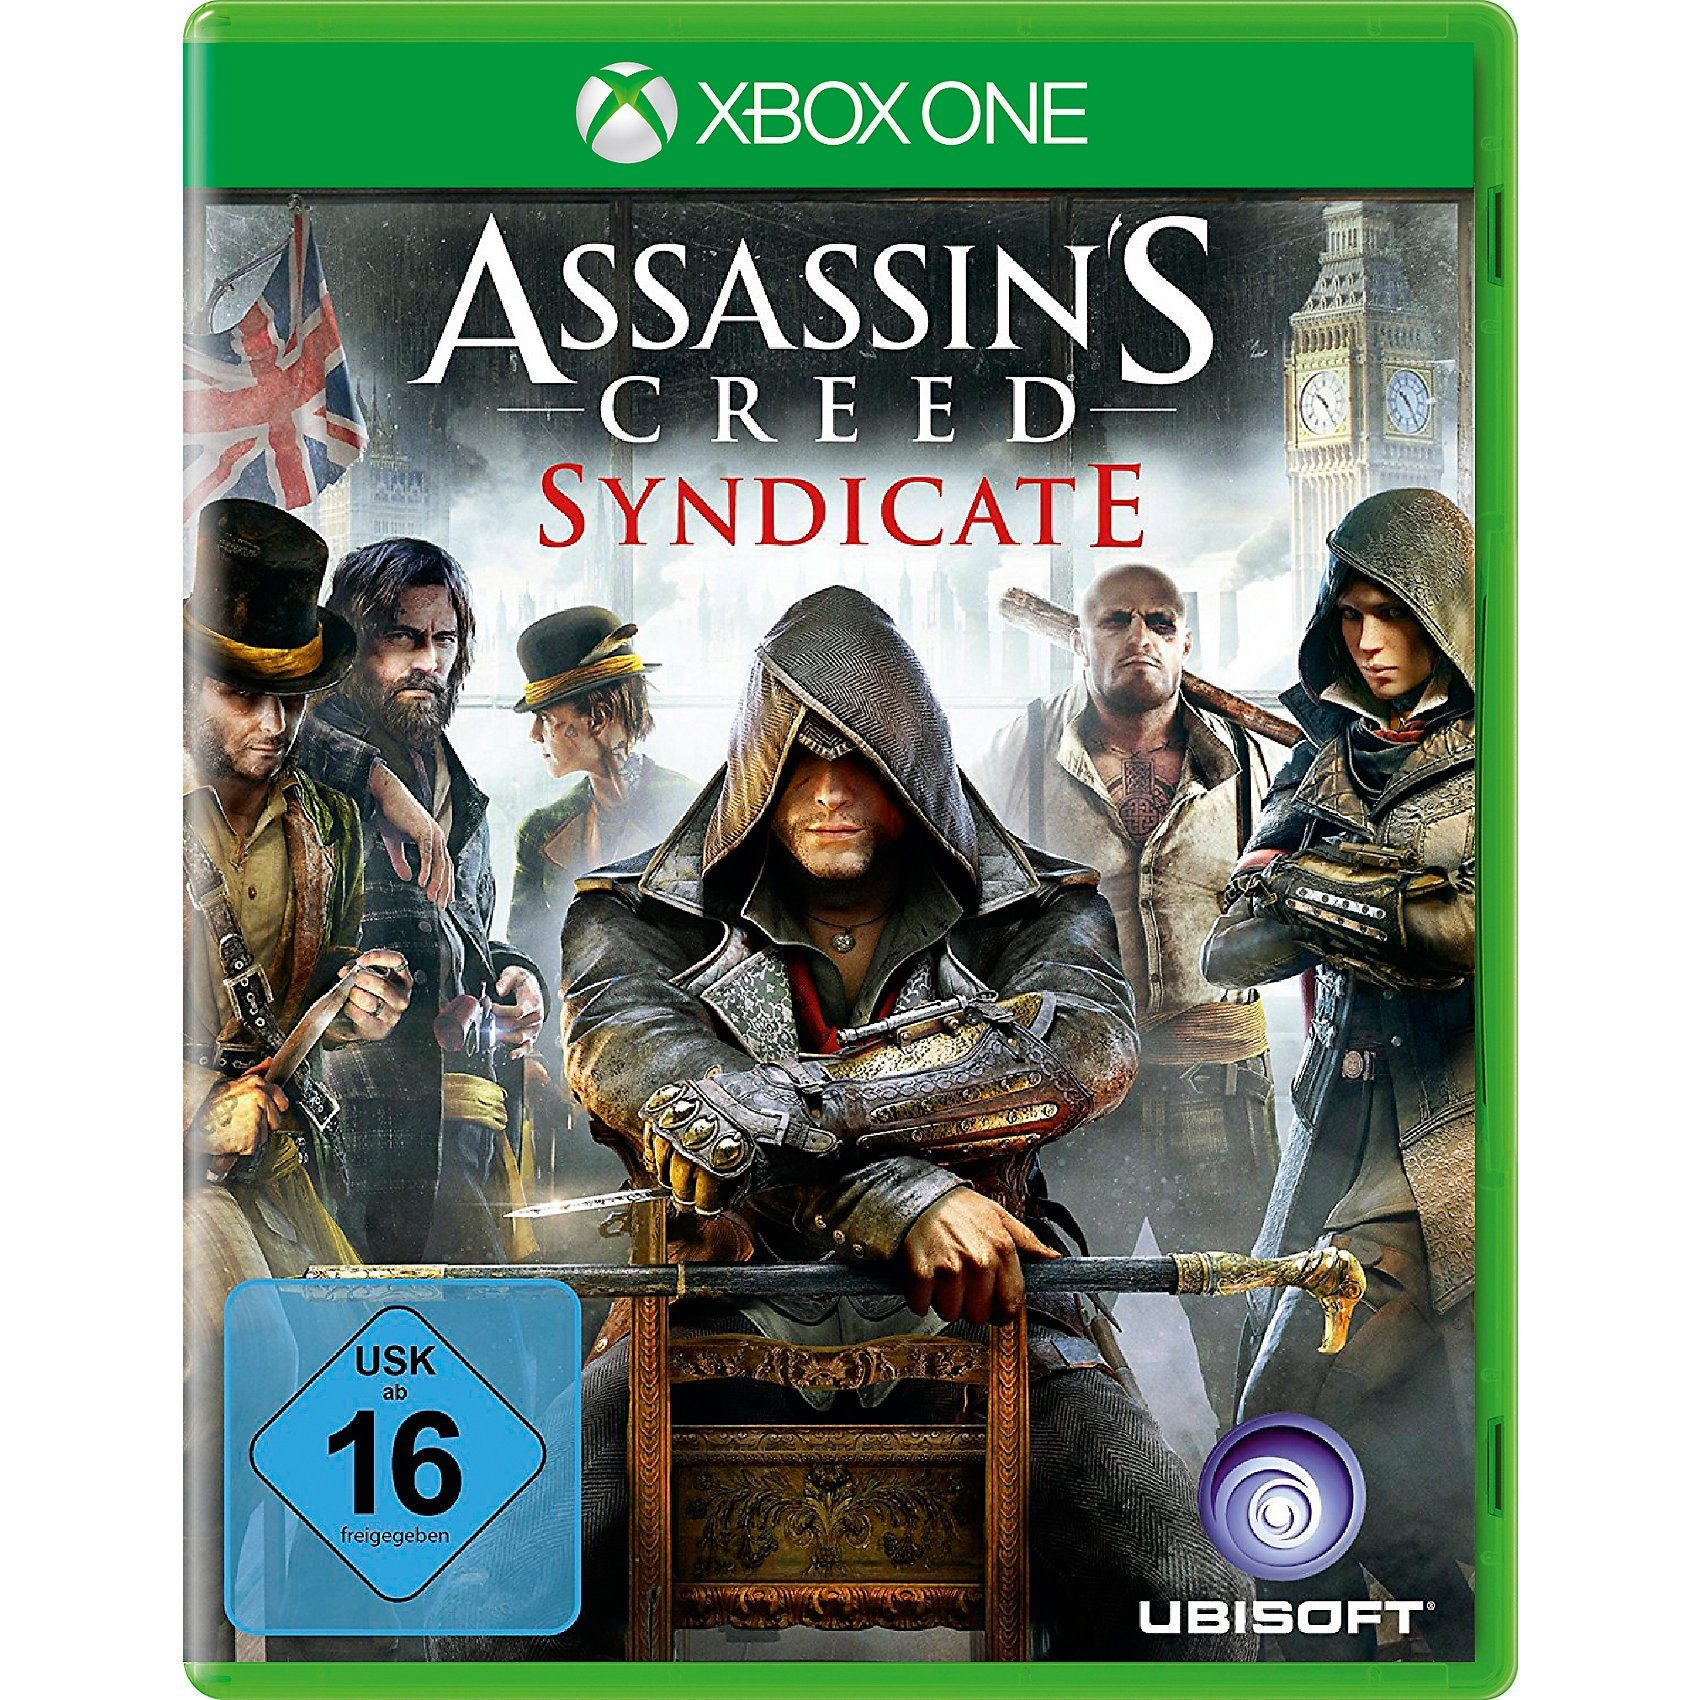 ak tronic XBOXONE Assassins Creed Syndicate